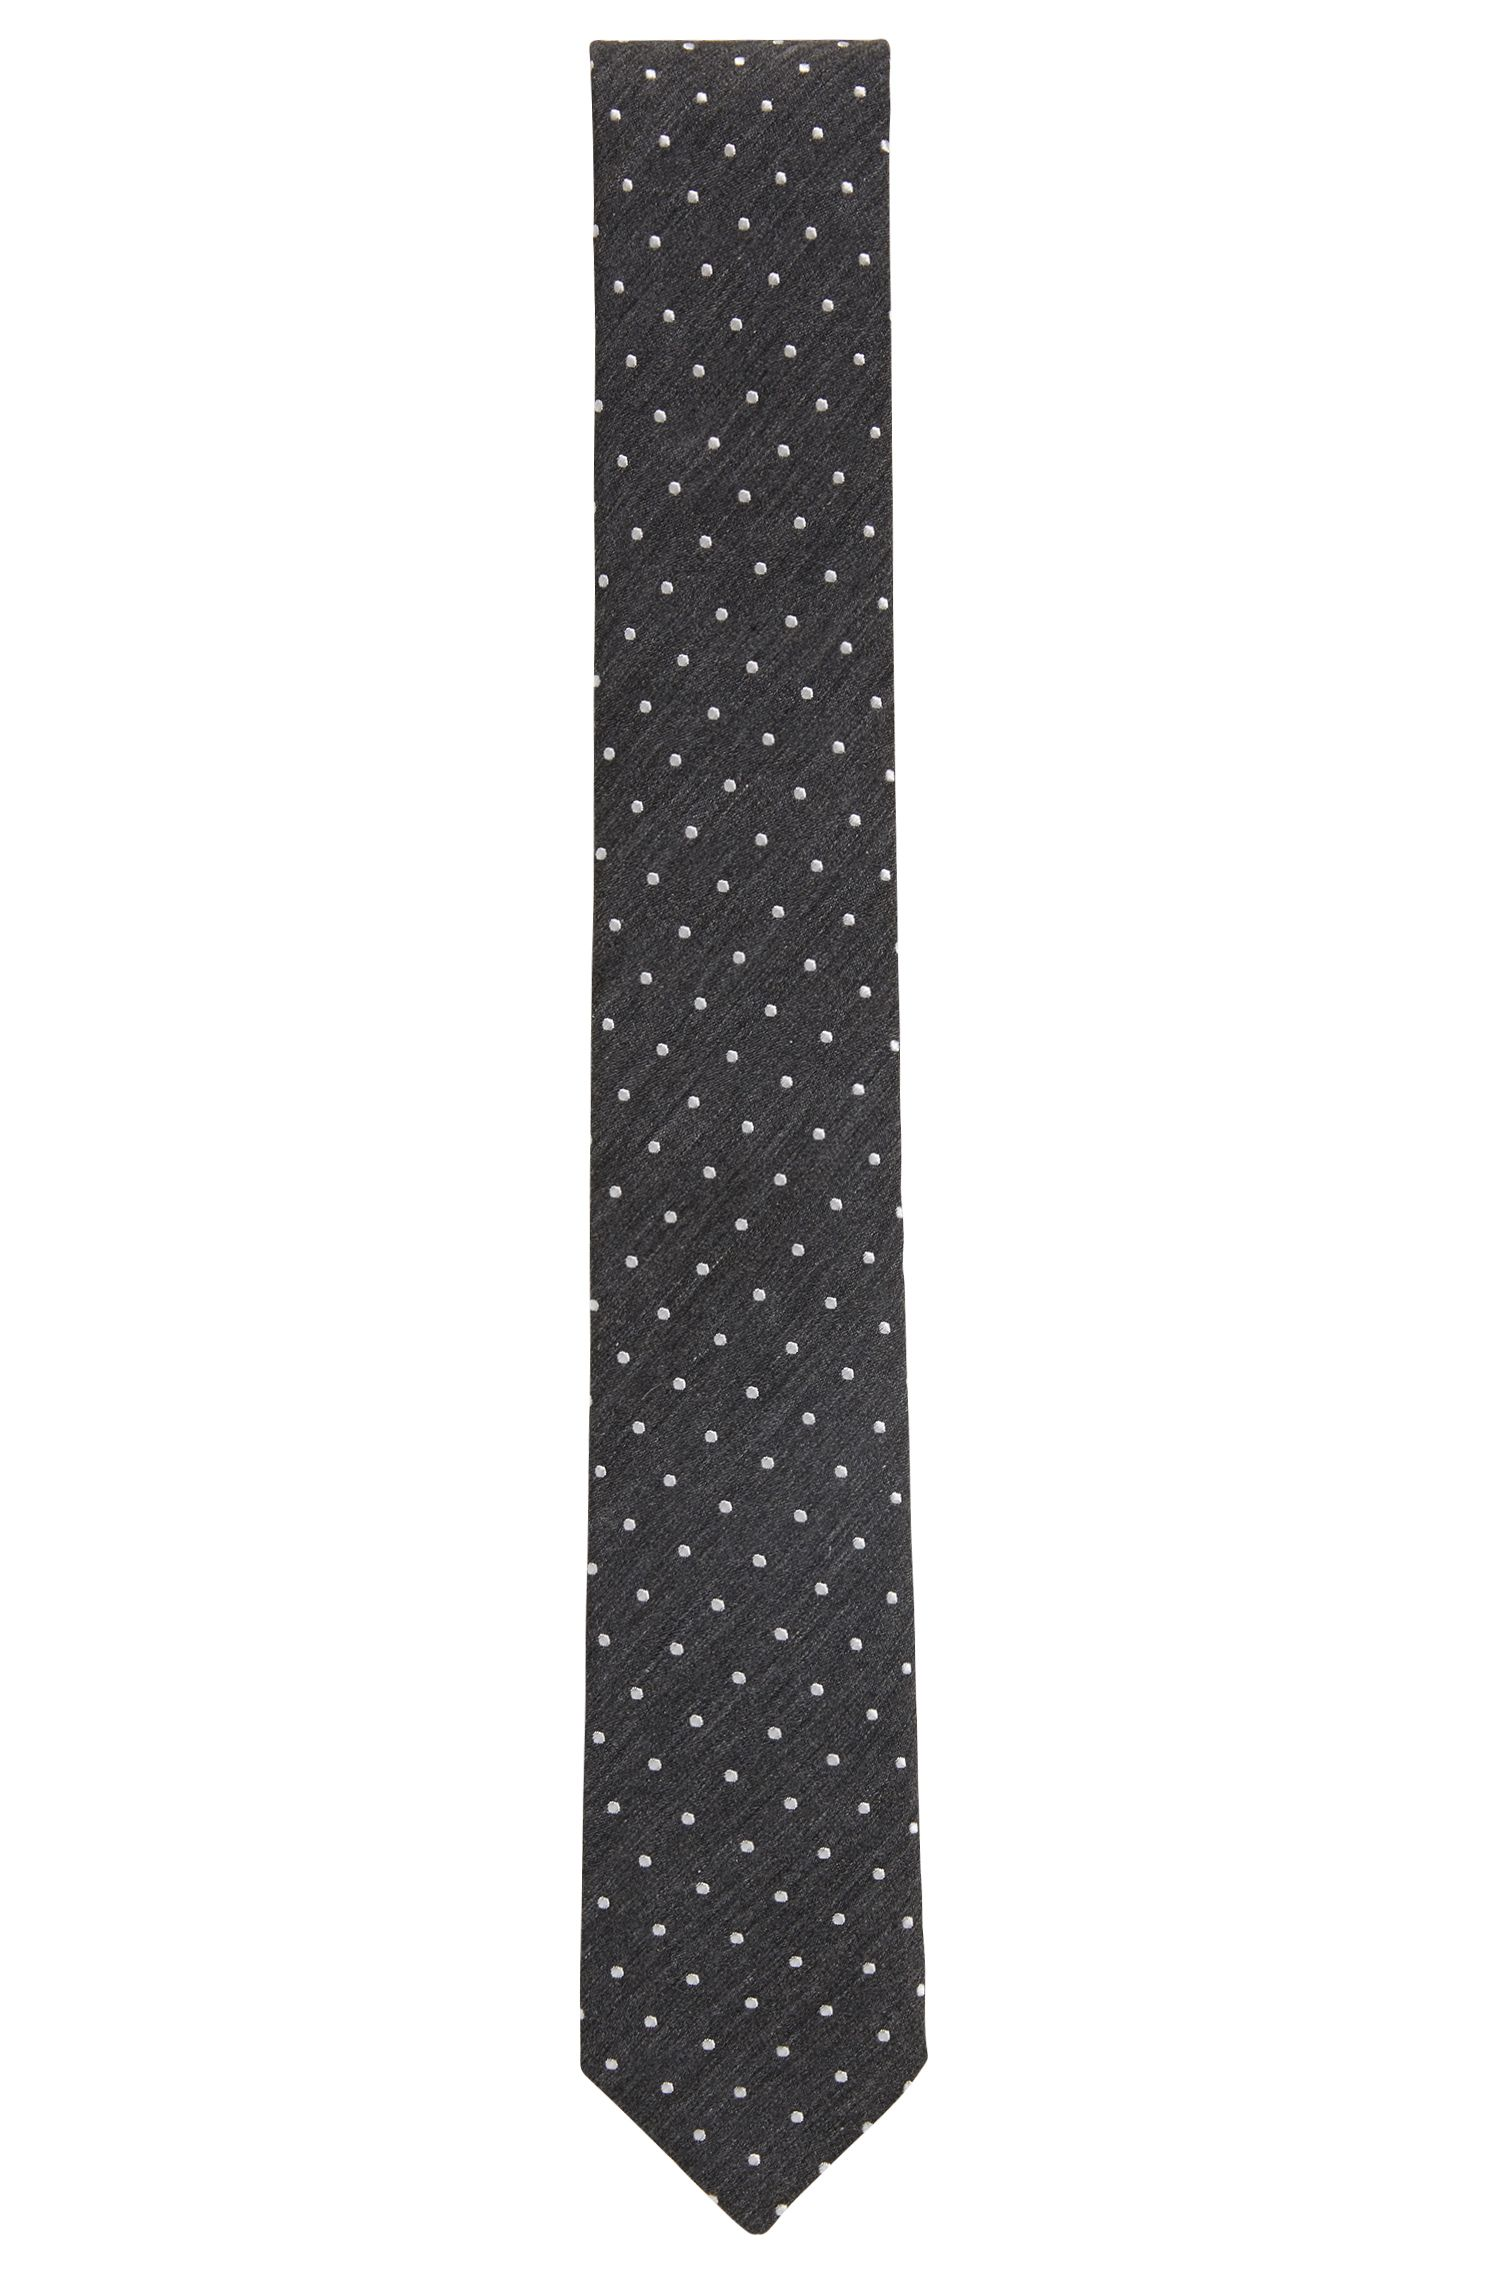 Italian-made jacquard-woven tie with dot motif